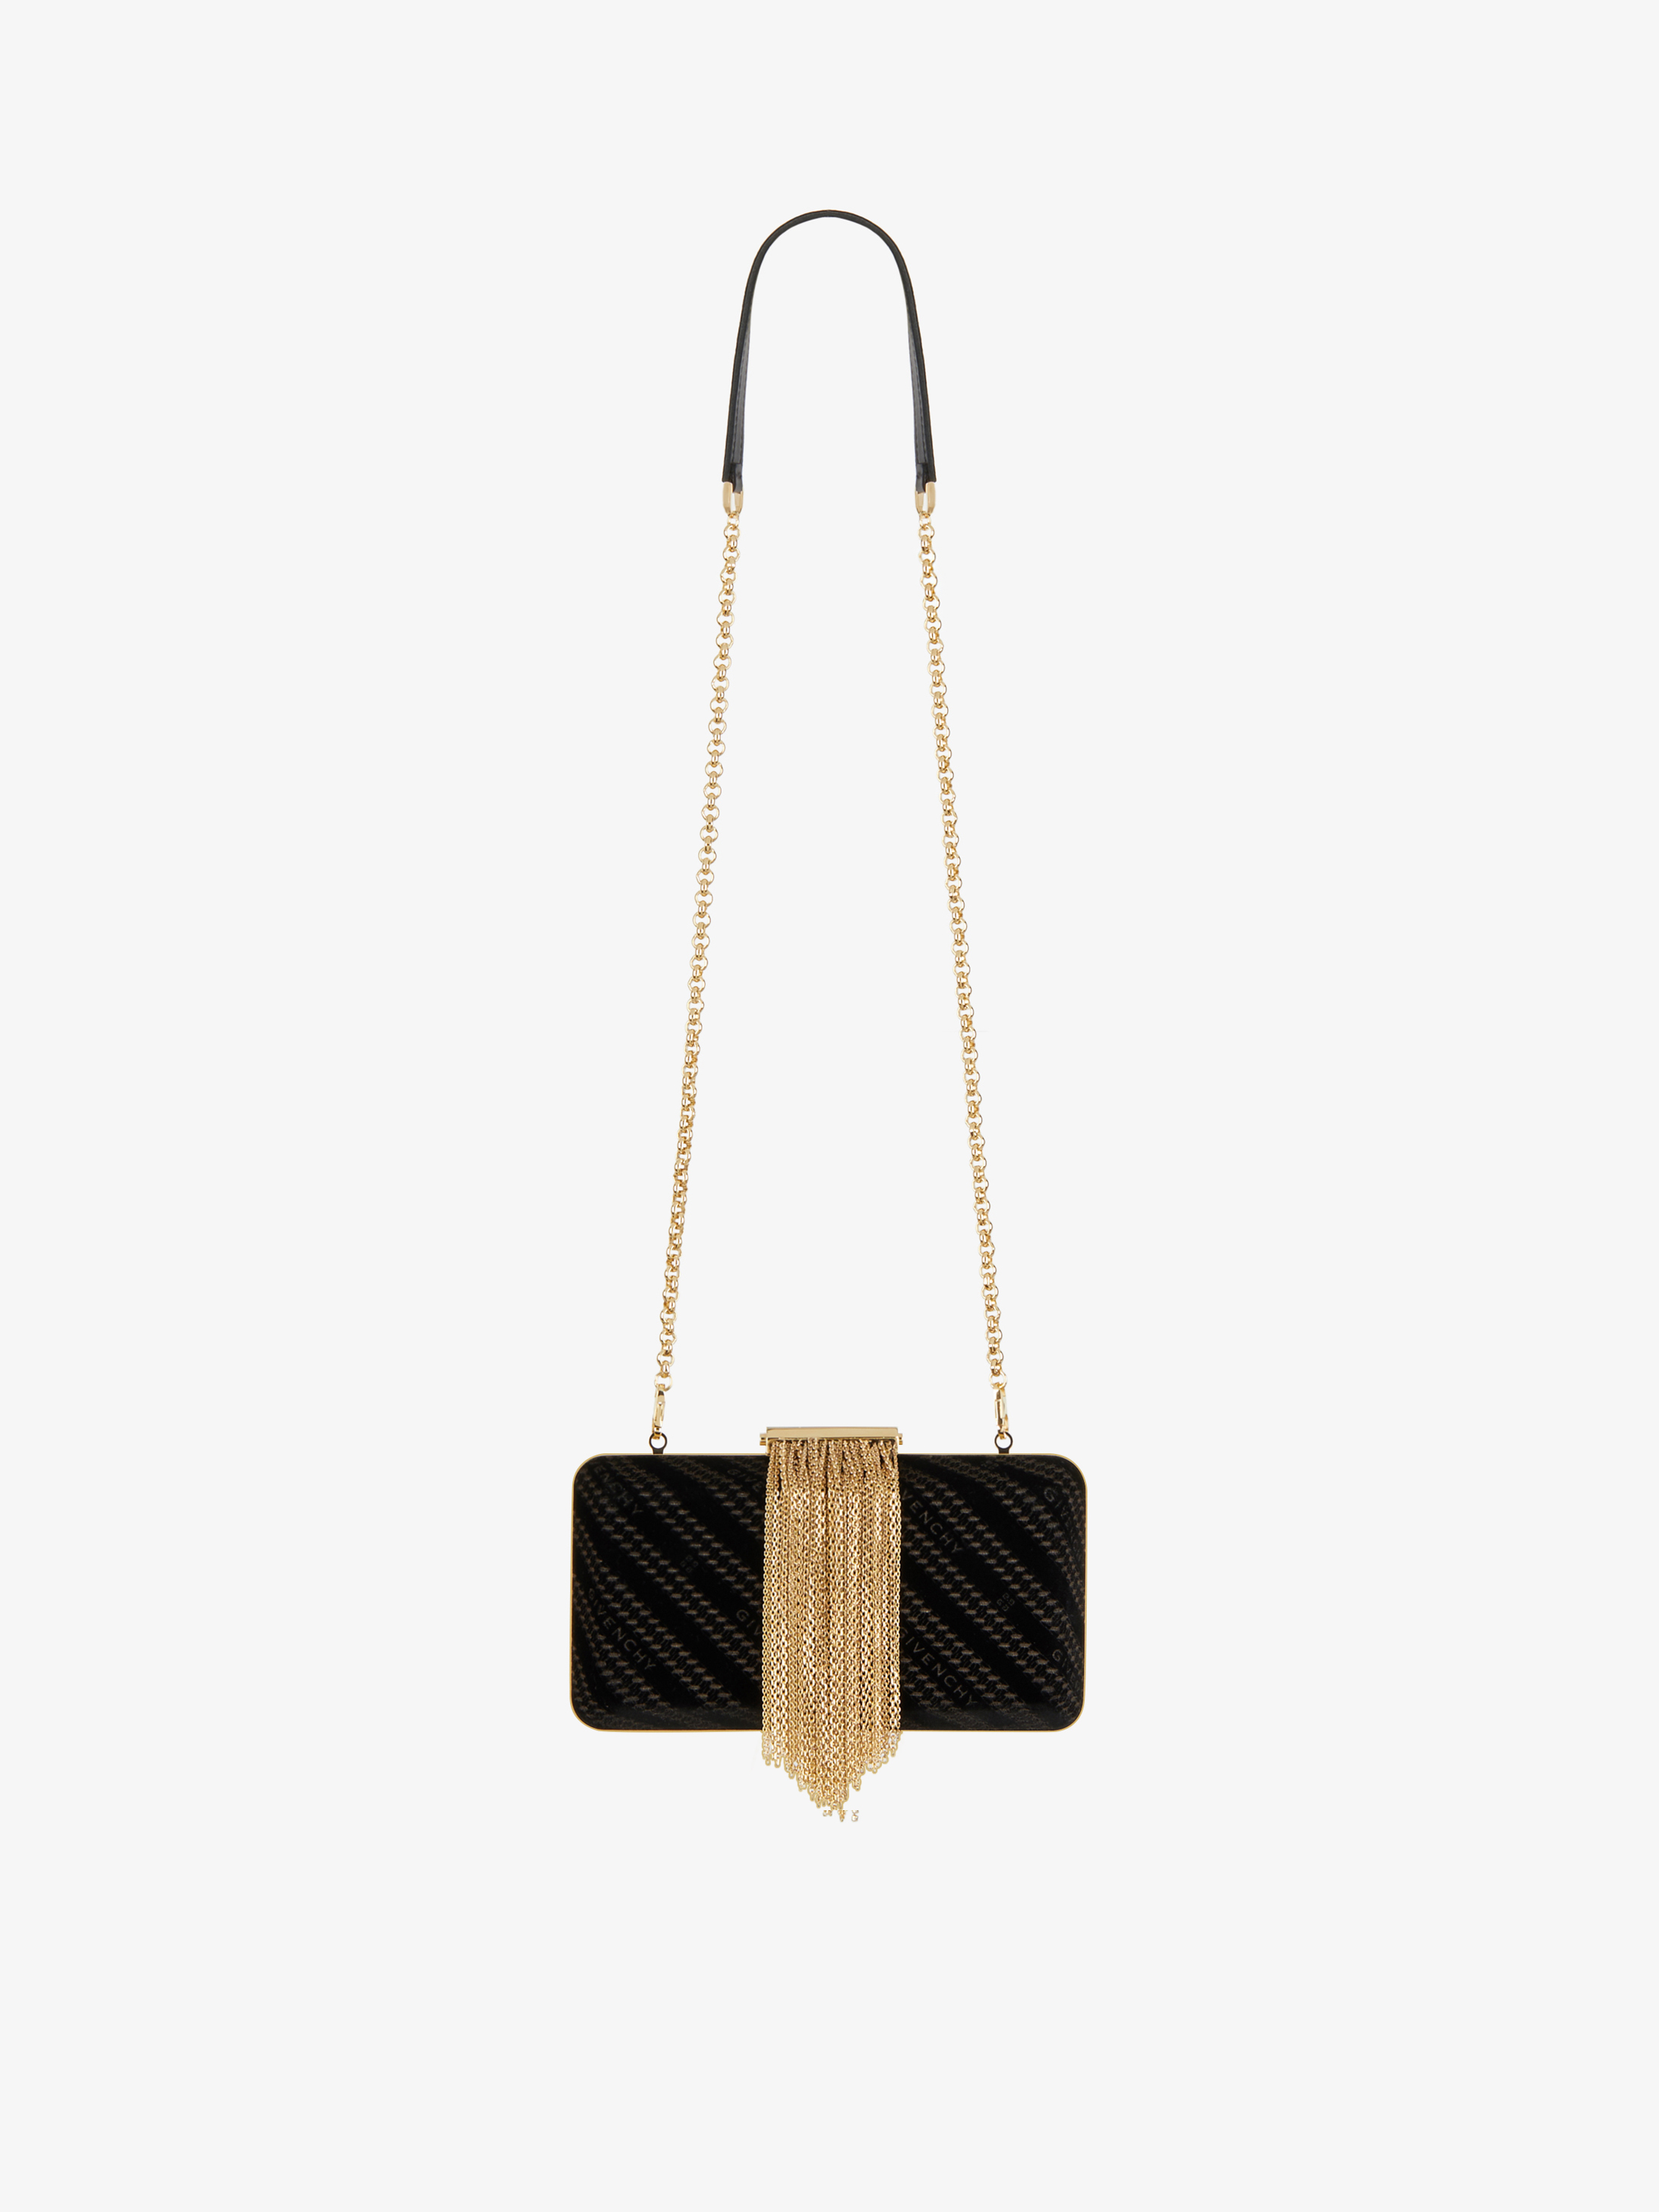 Minaudiere in velvet GIVENCHY chain with fringes